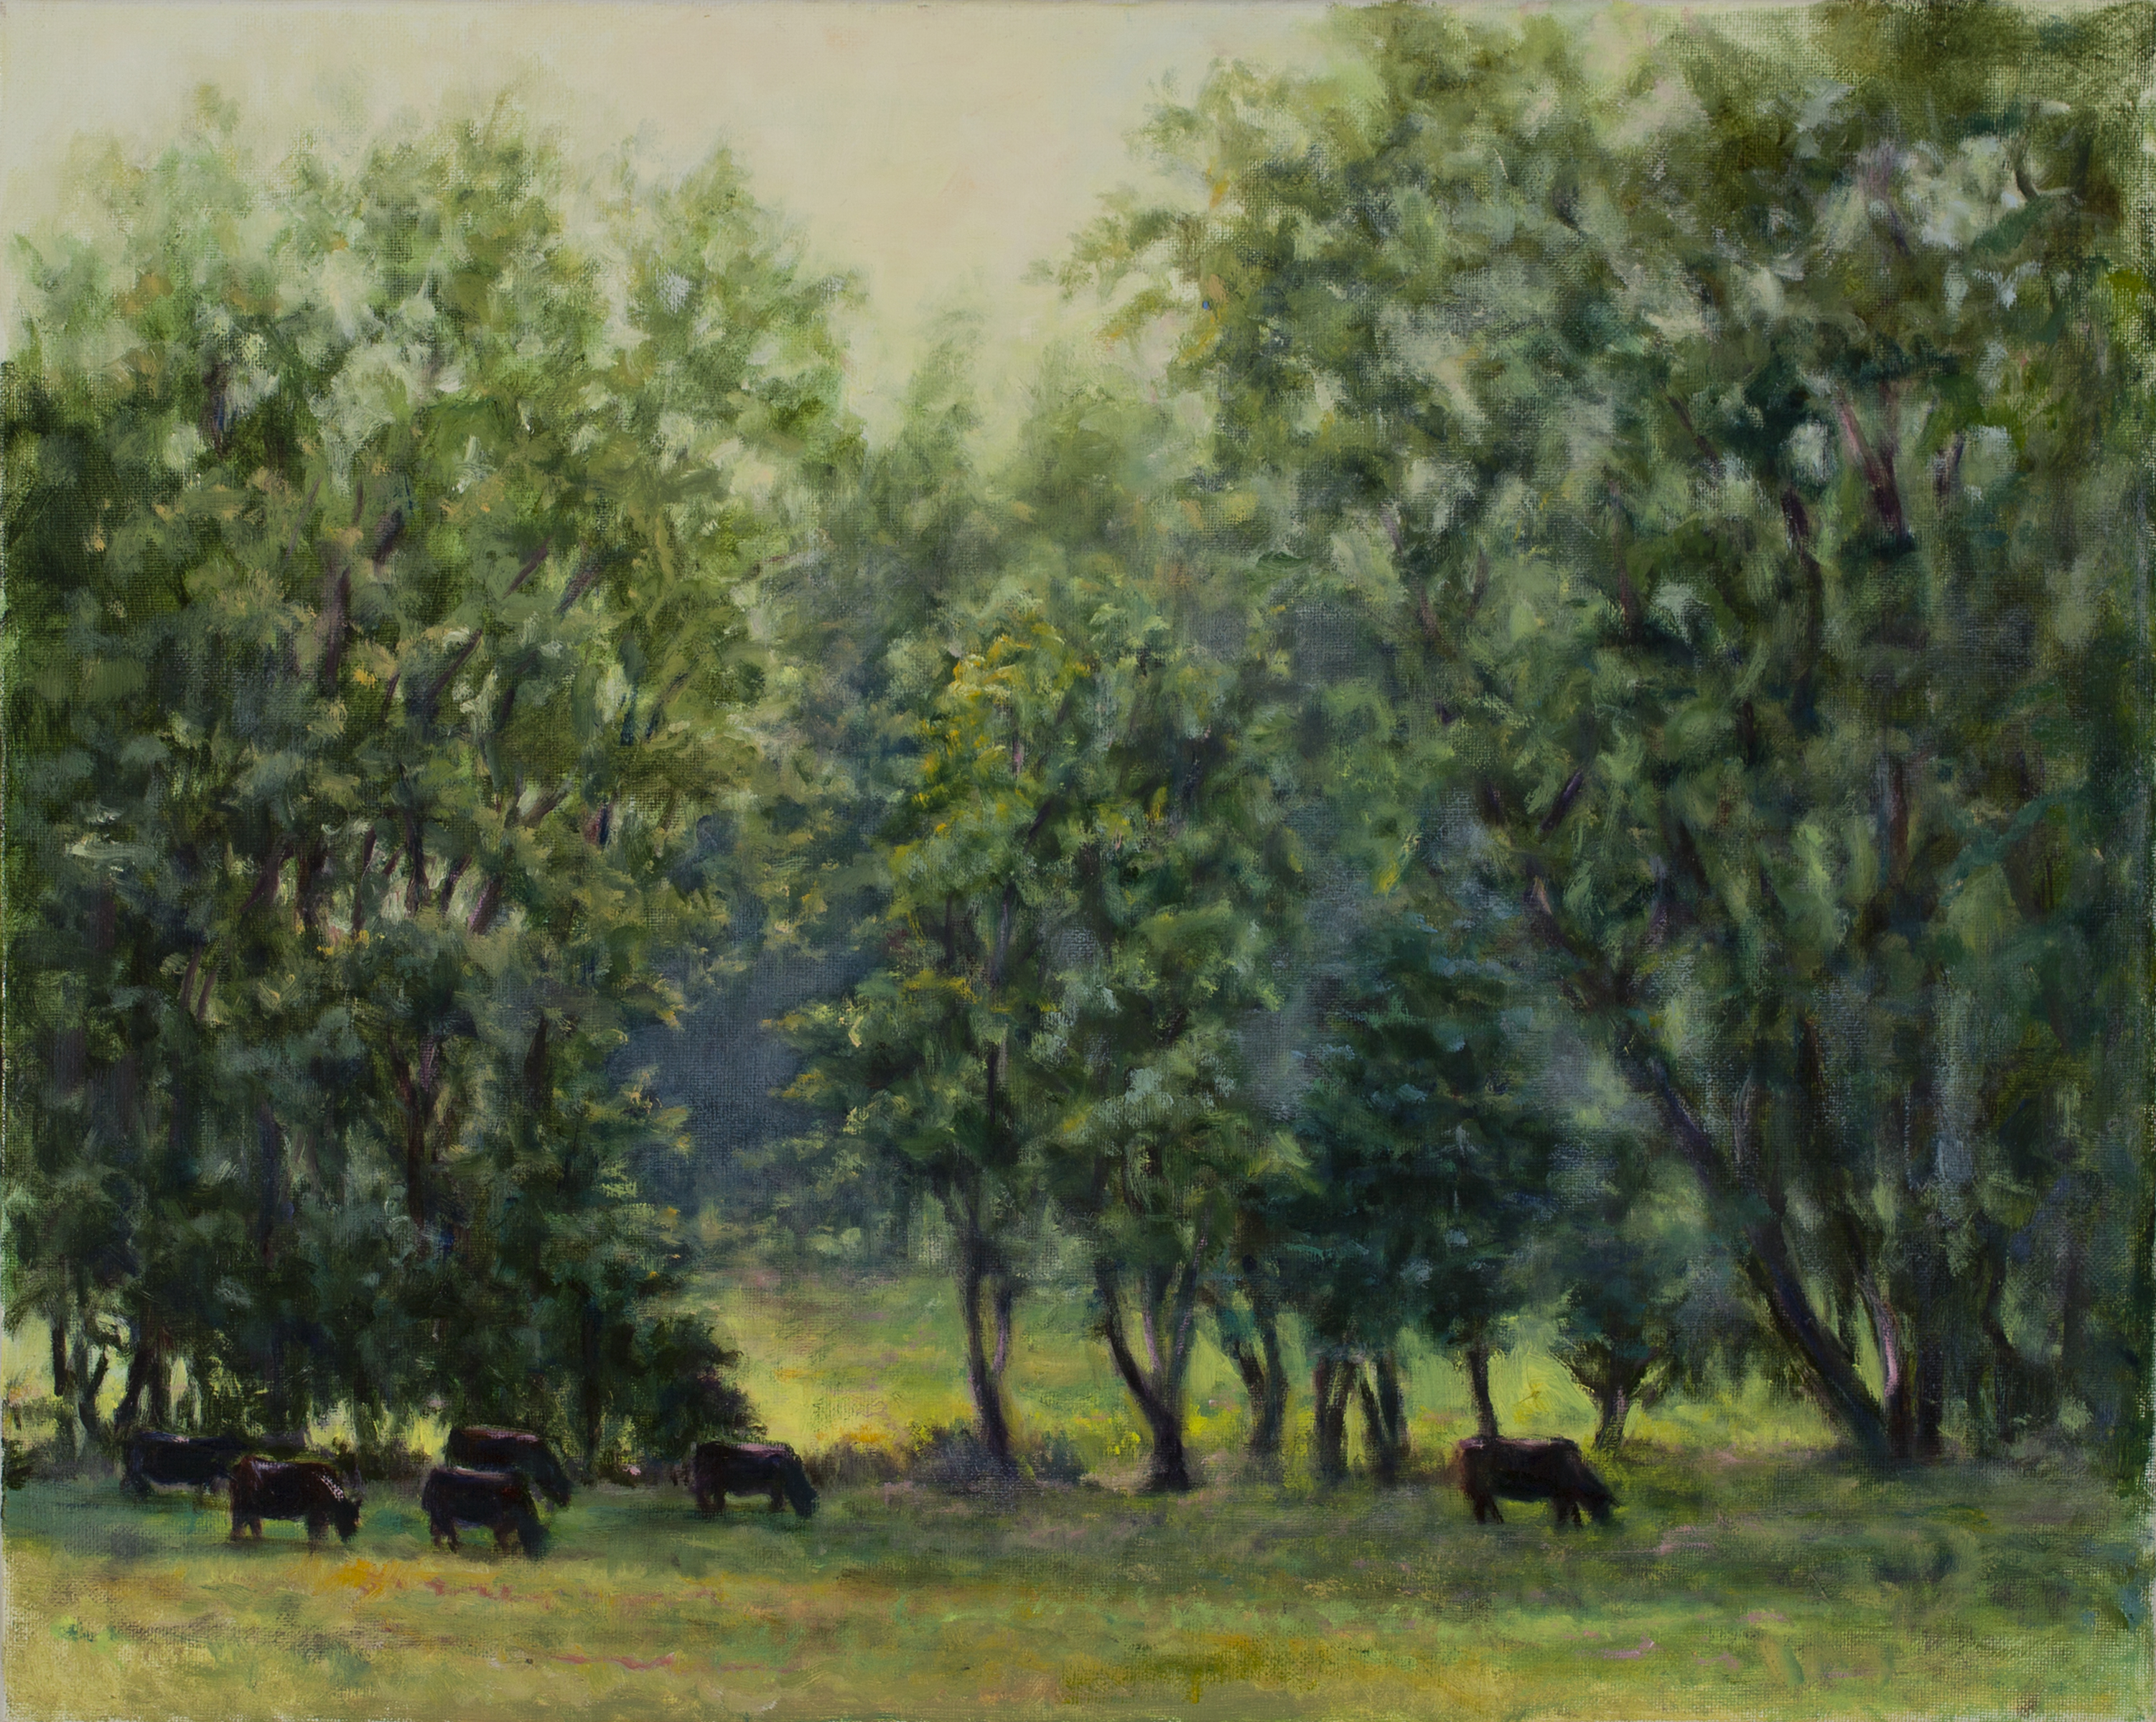 Cows ,landscape, sunlight, sunlit Forest ,trees,pastoral grazing cows